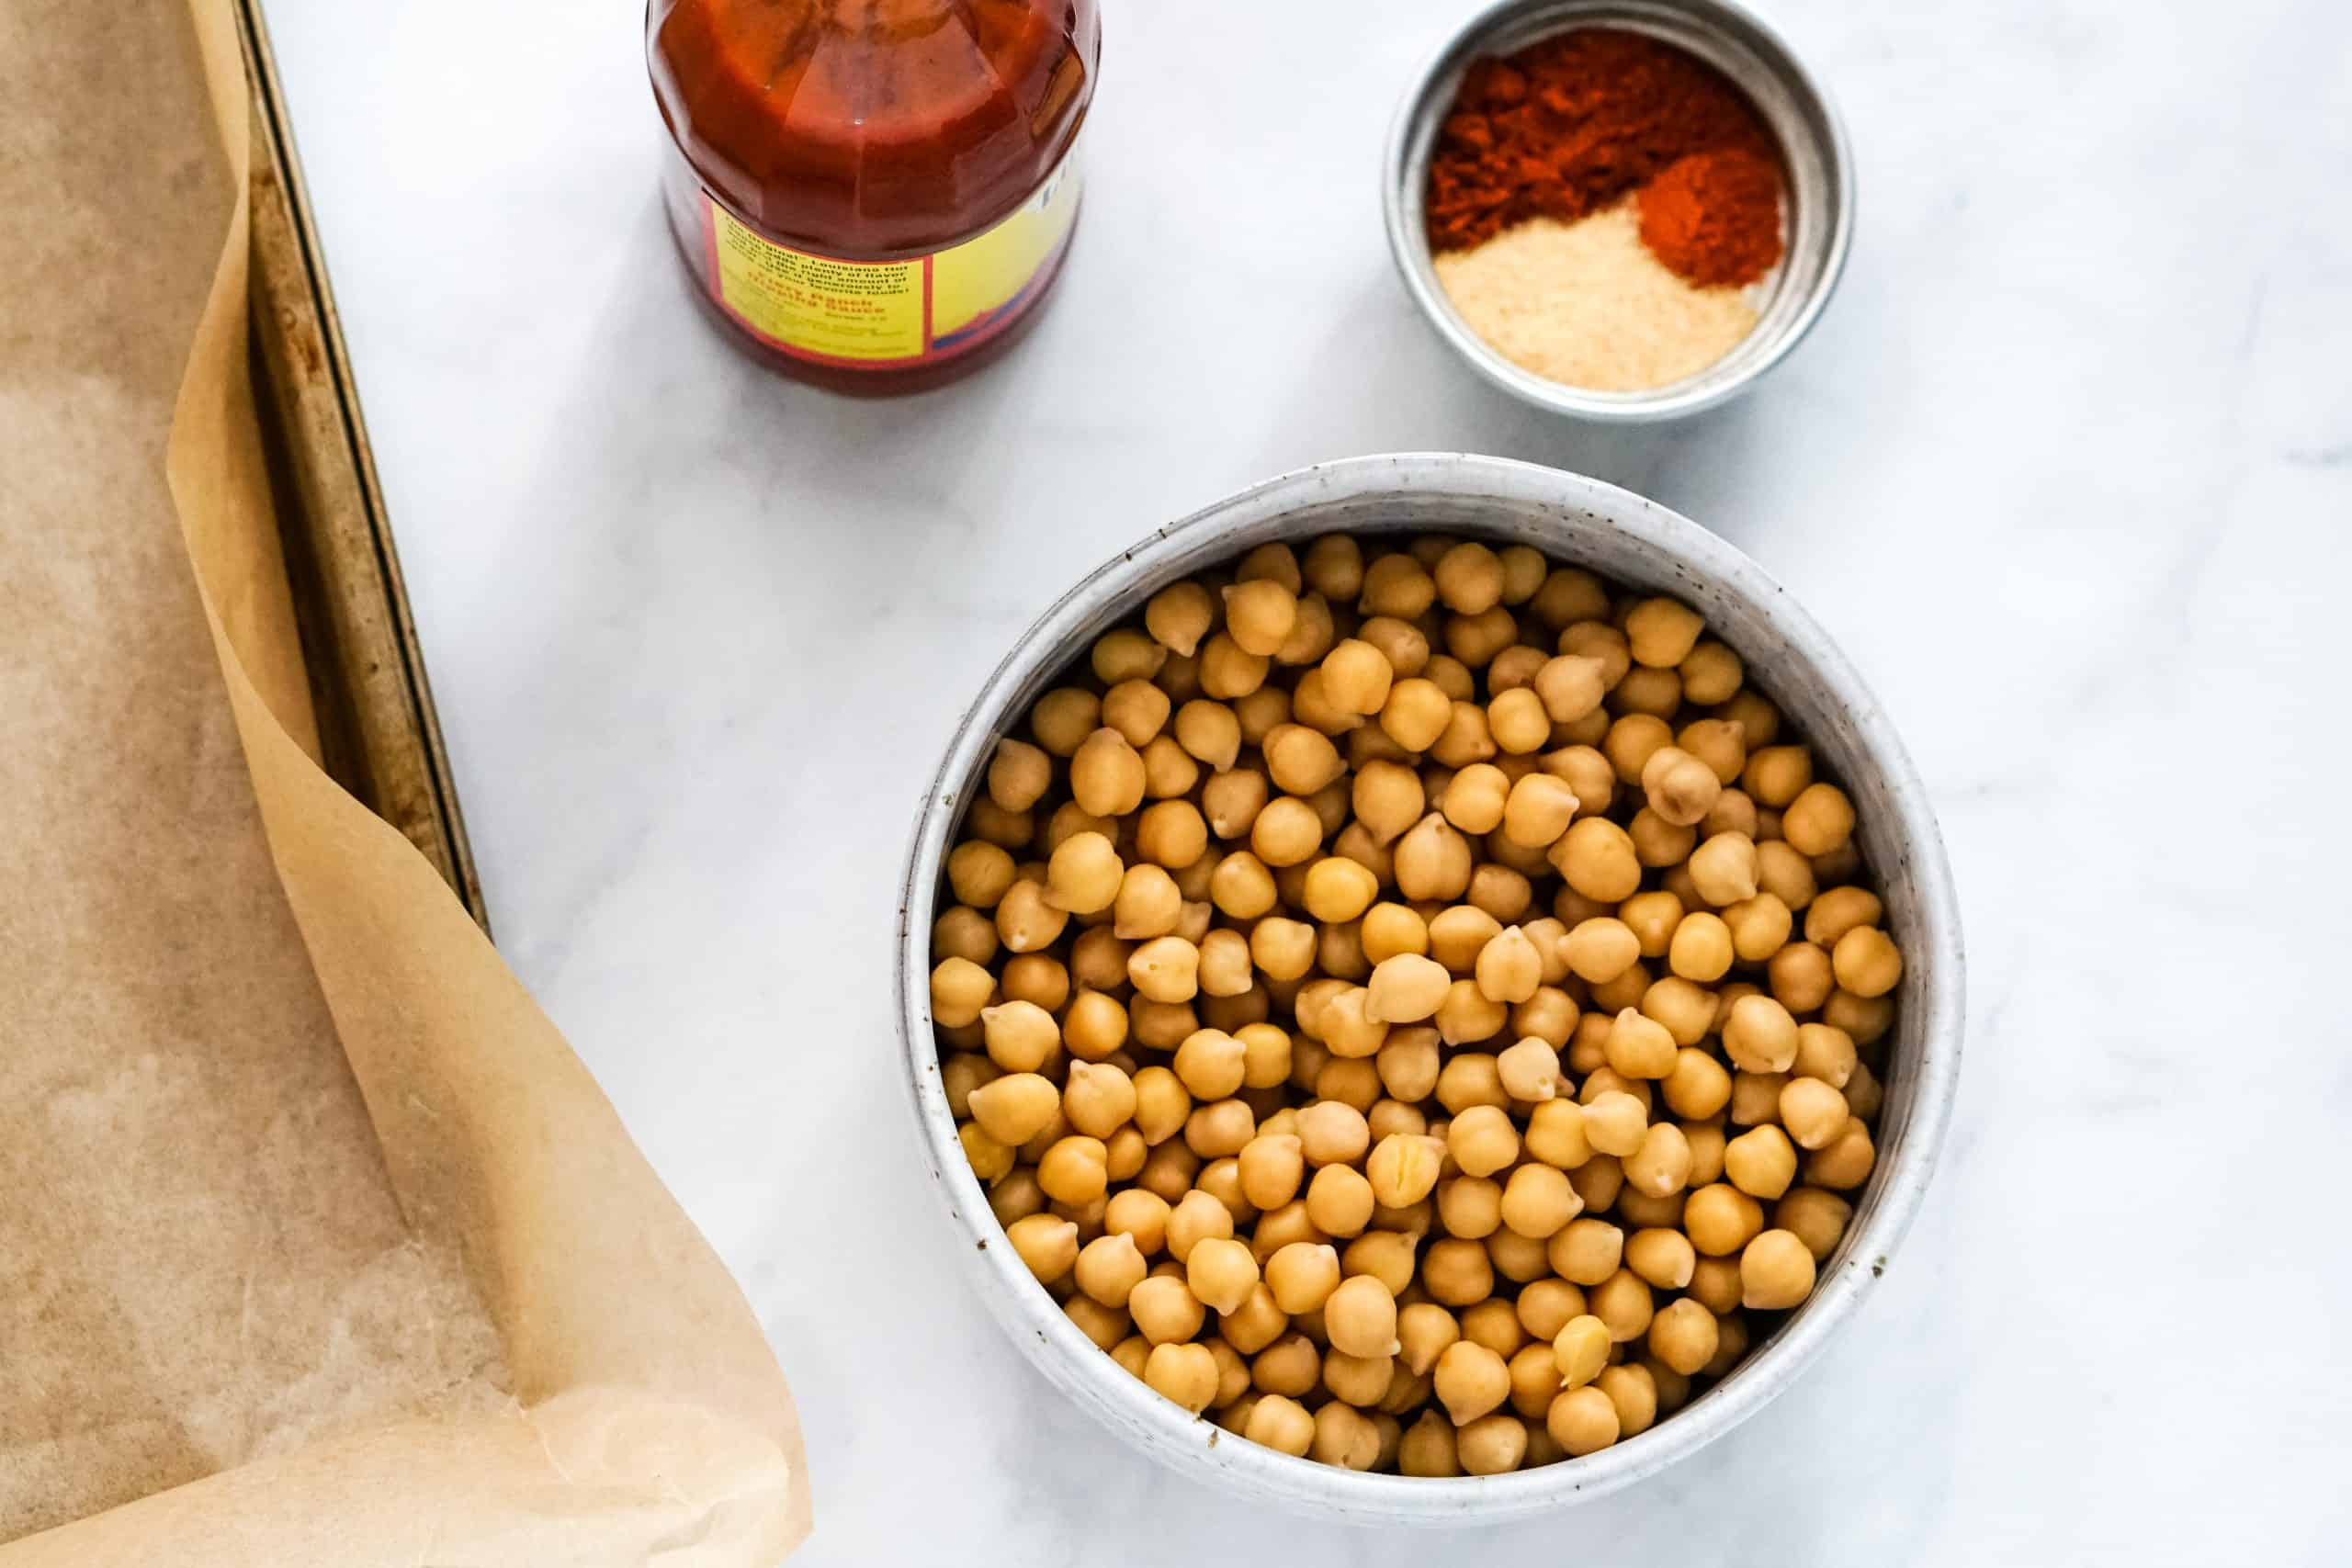 Chickpeas, spices and hot sauce on white table.